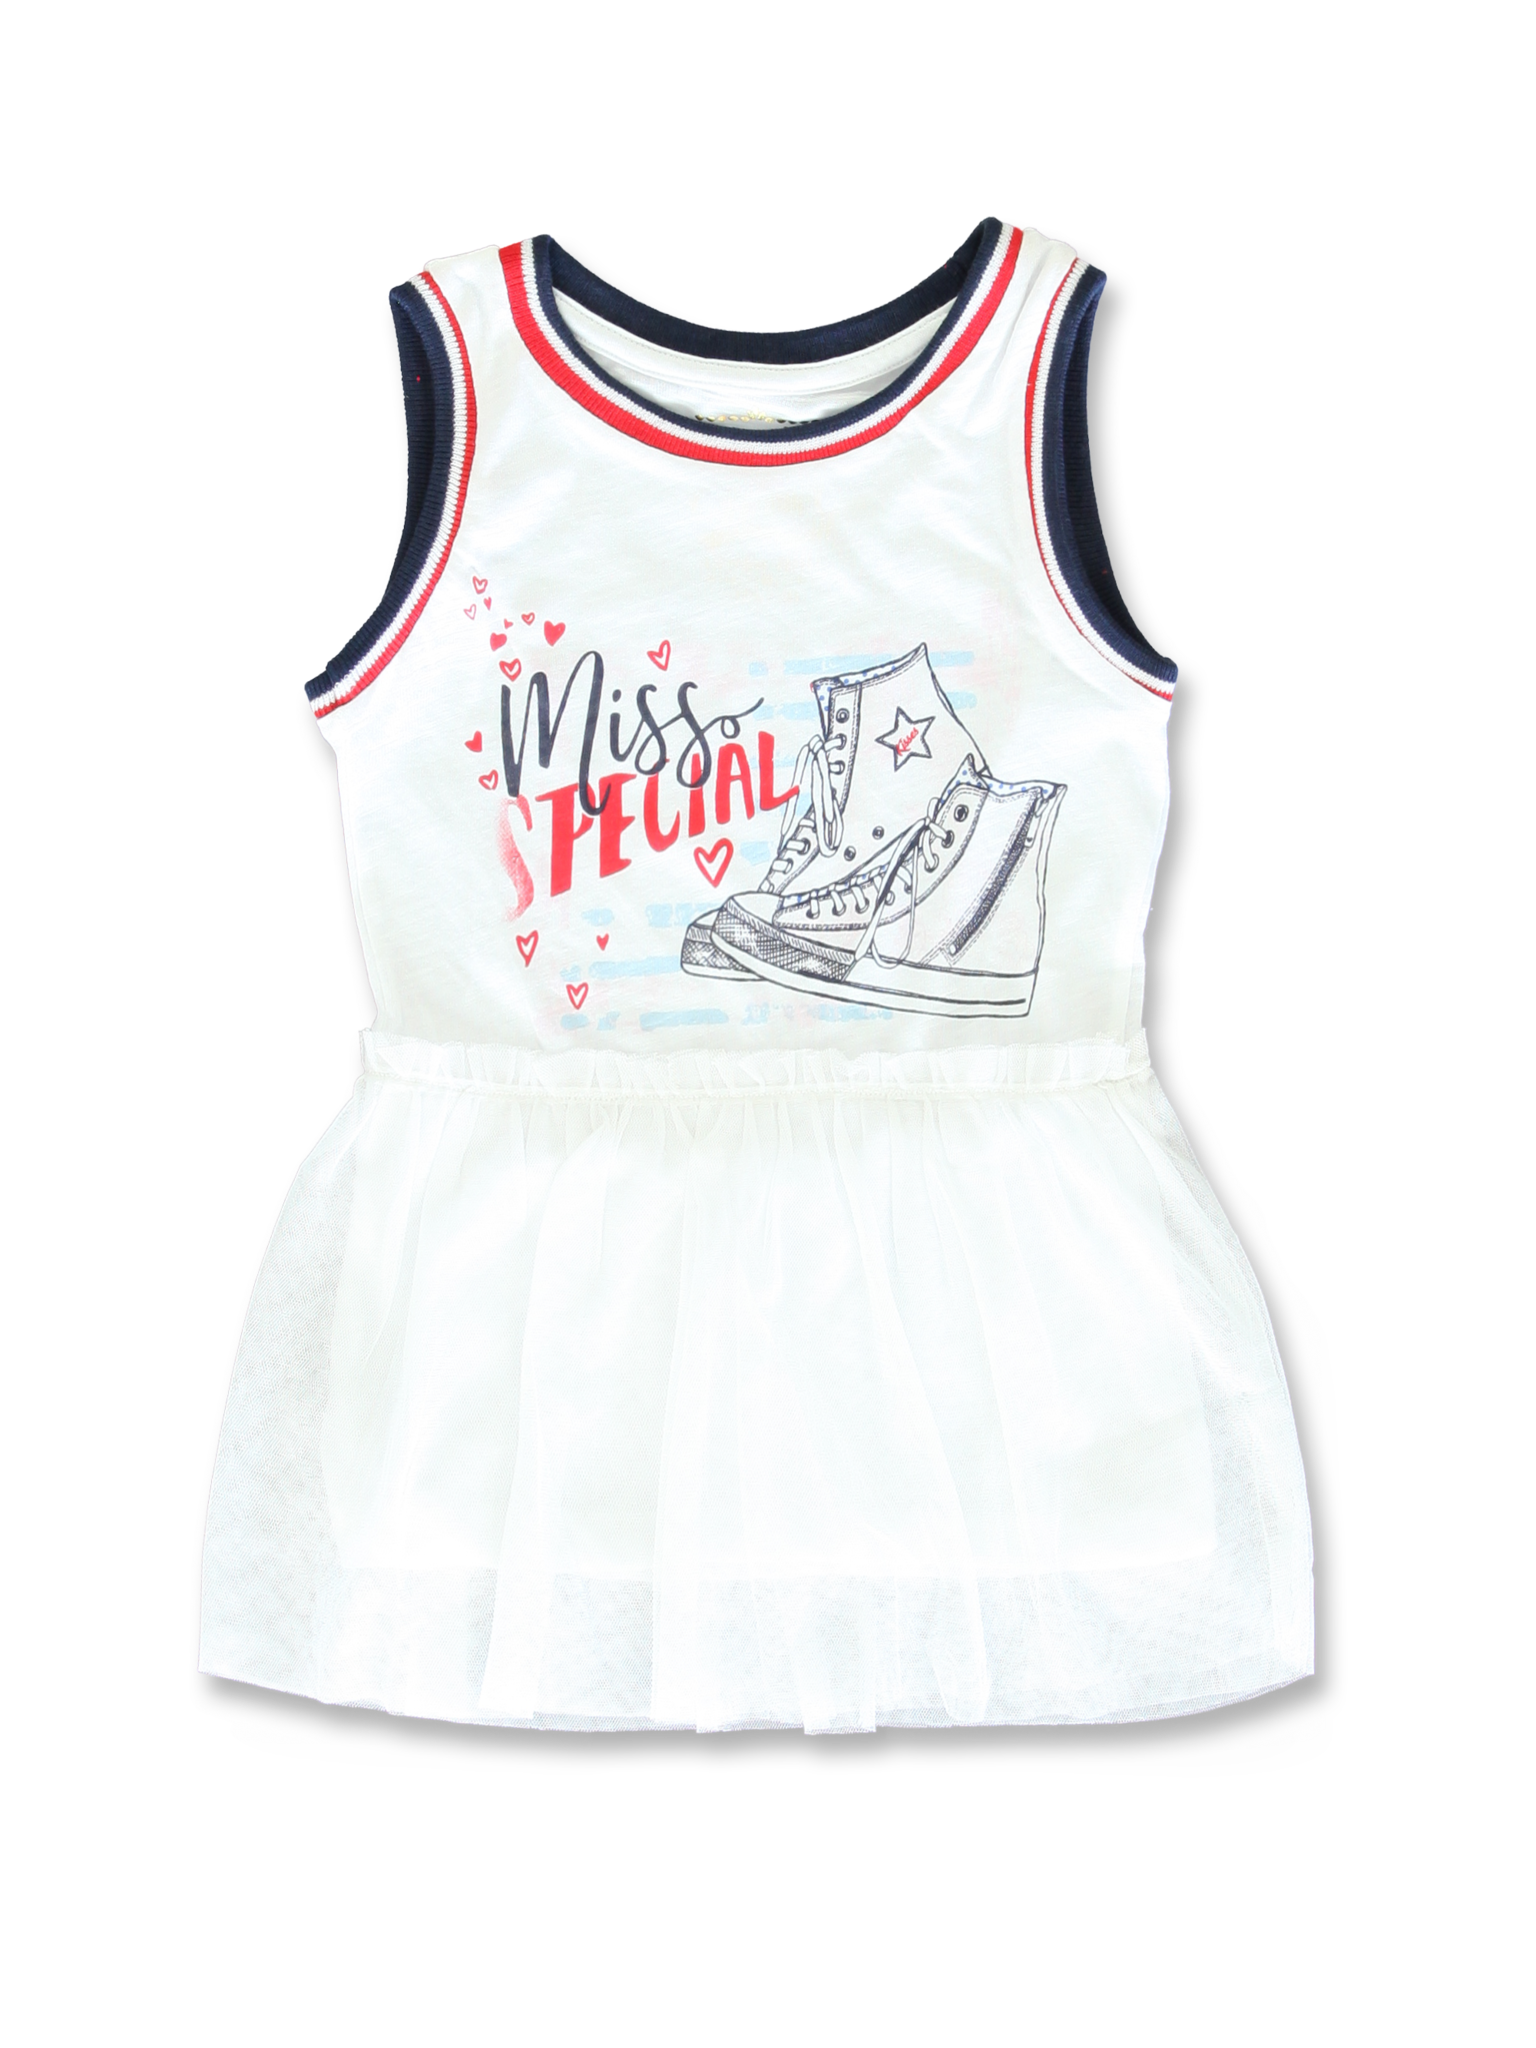 All Brands | Summerproducts Small Girls | Singlet | 12 pcs/box